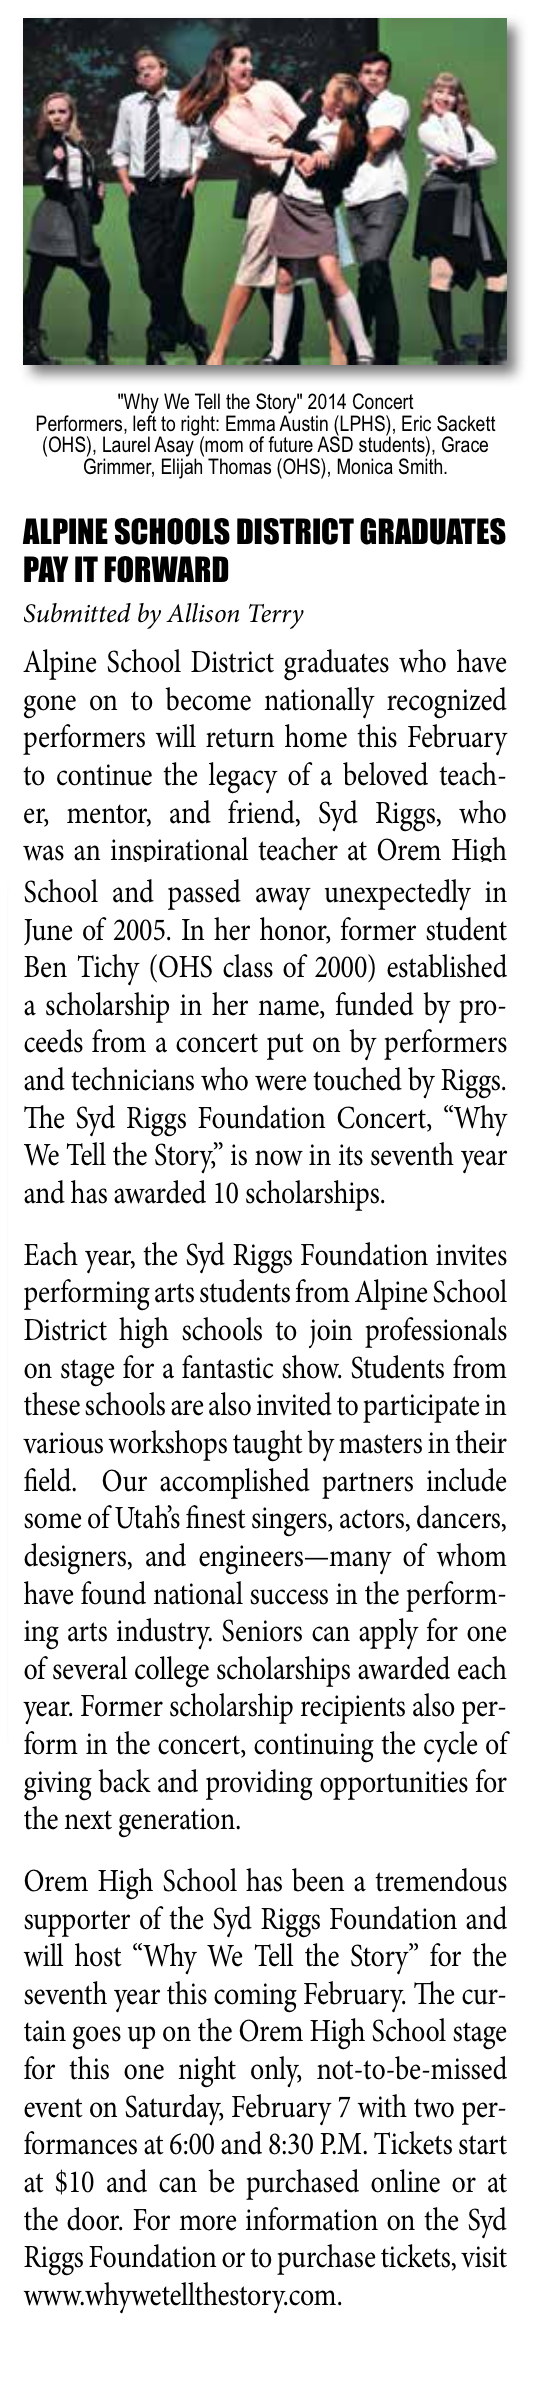 WWTTS_2015article.png